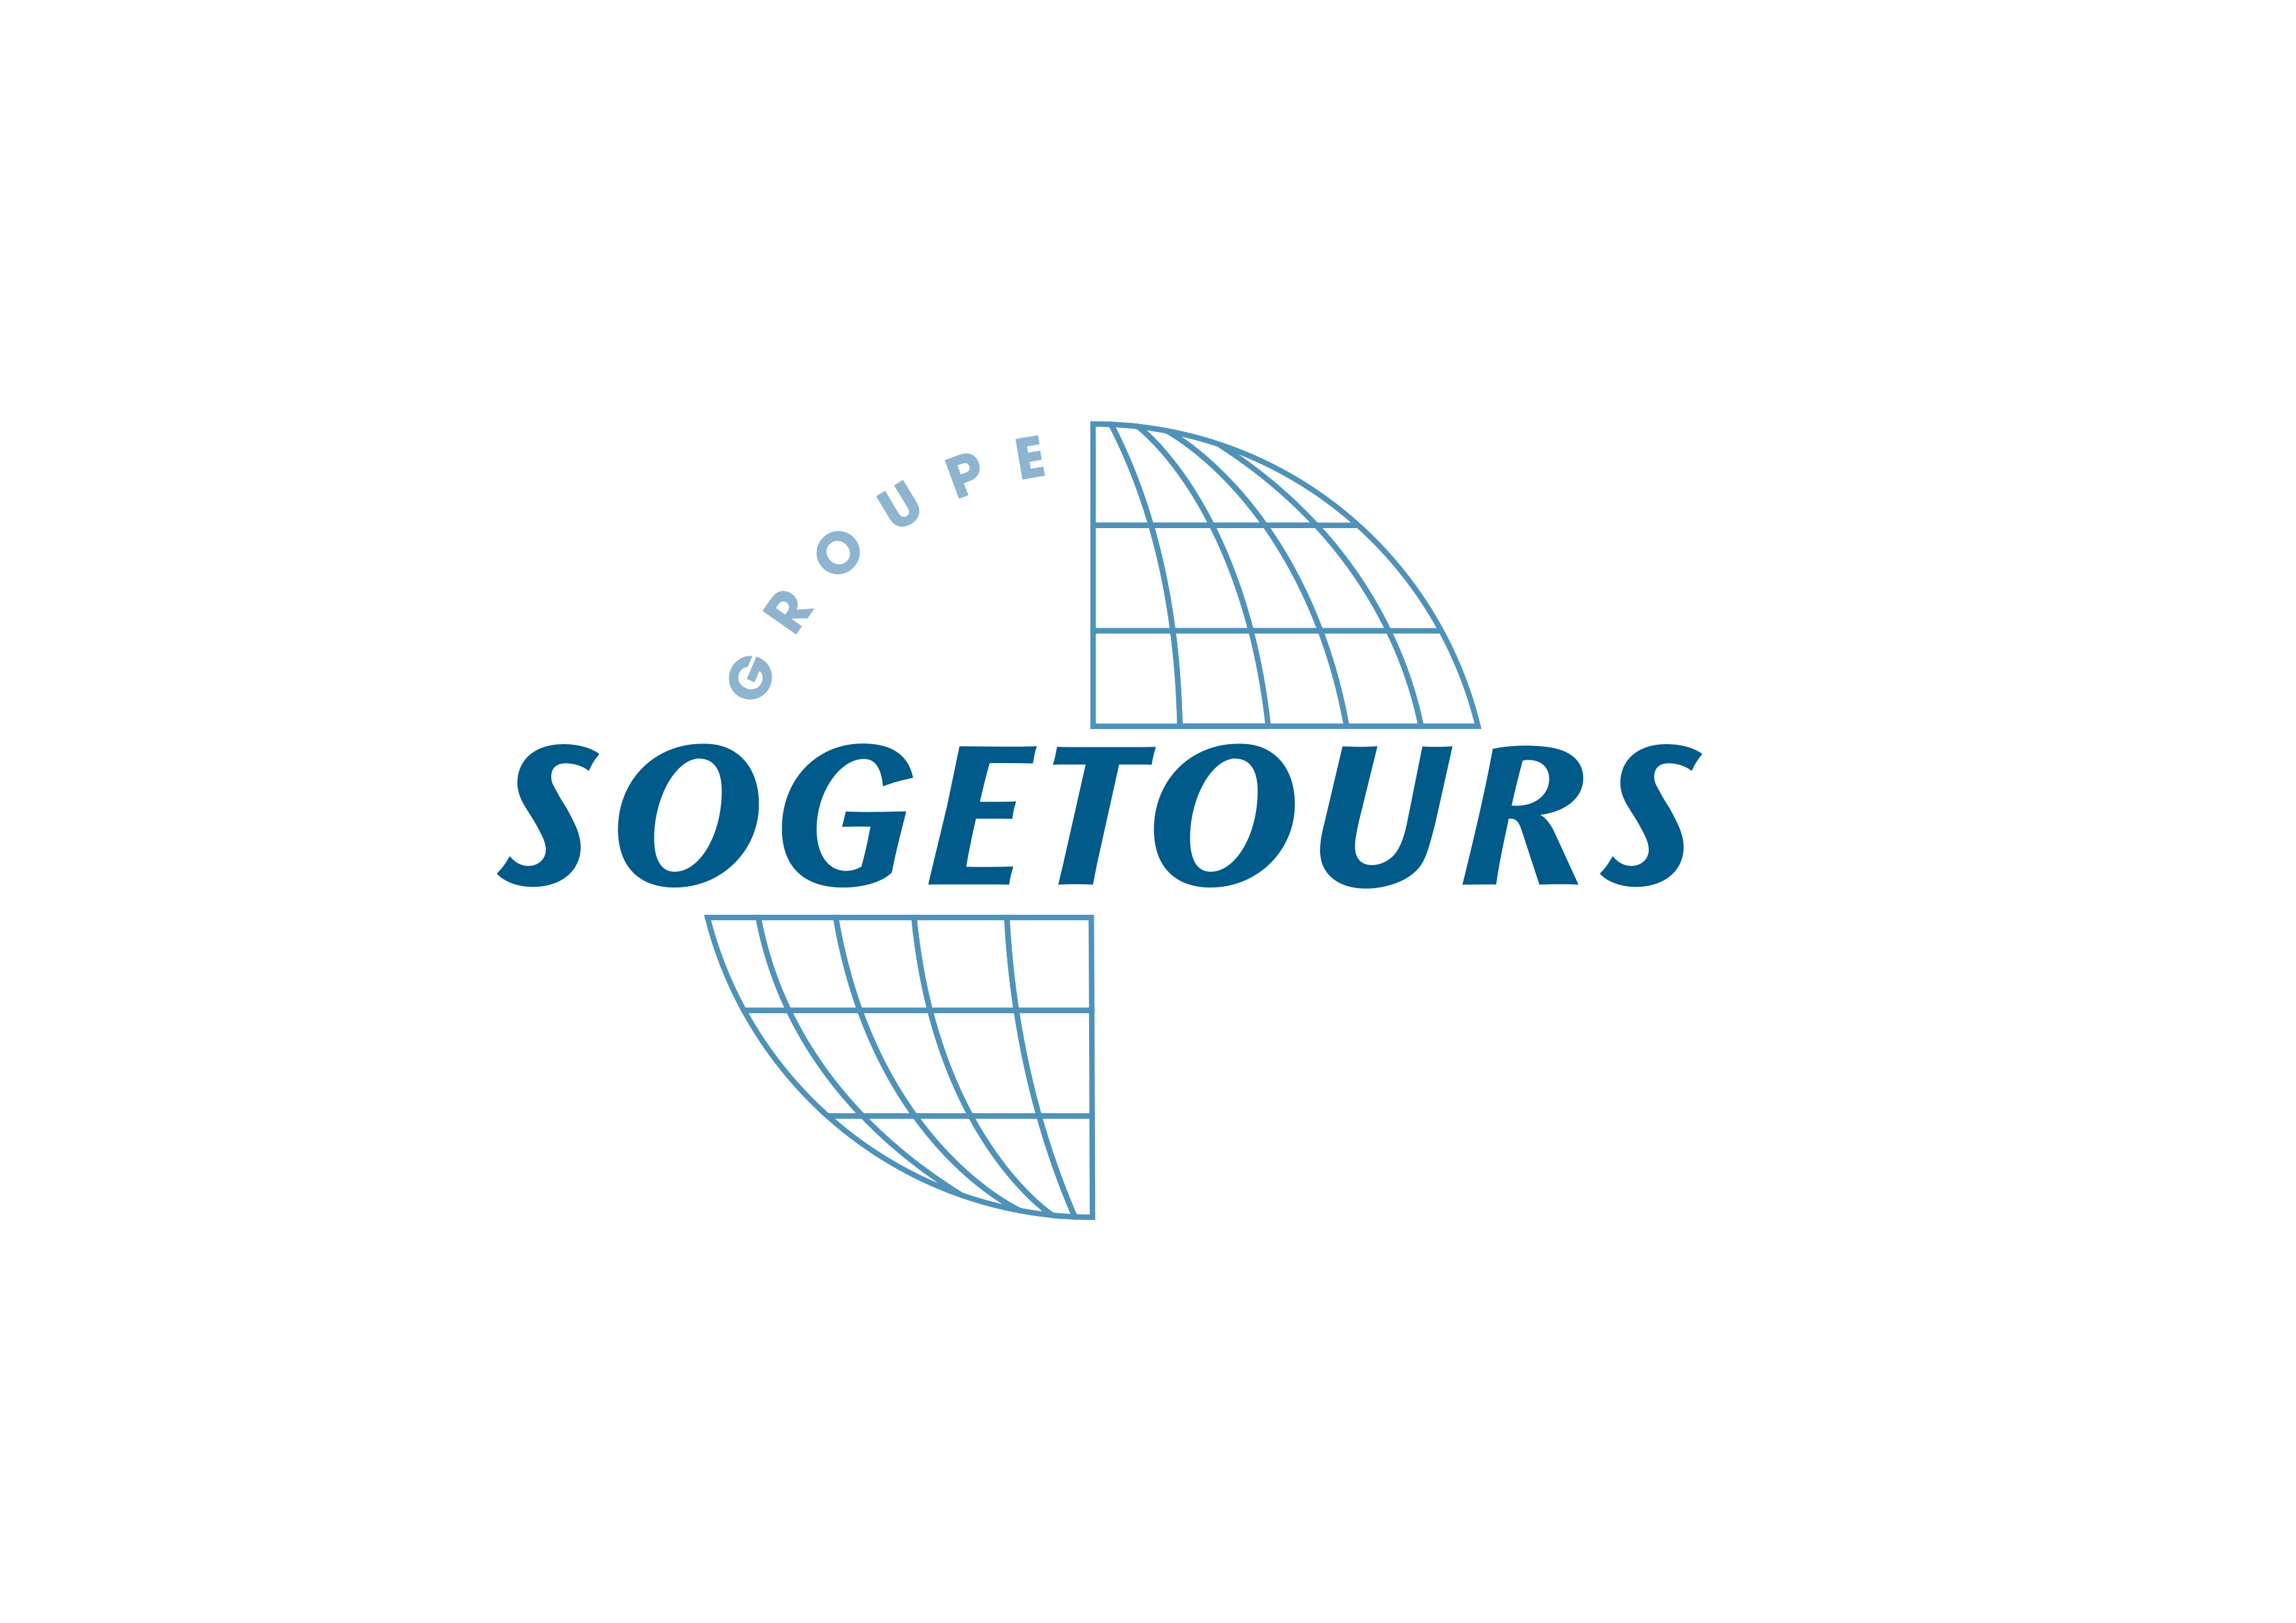 https://www.tourmag.com/docs/emploi/SOGETOURS_PourFondClair.jpg